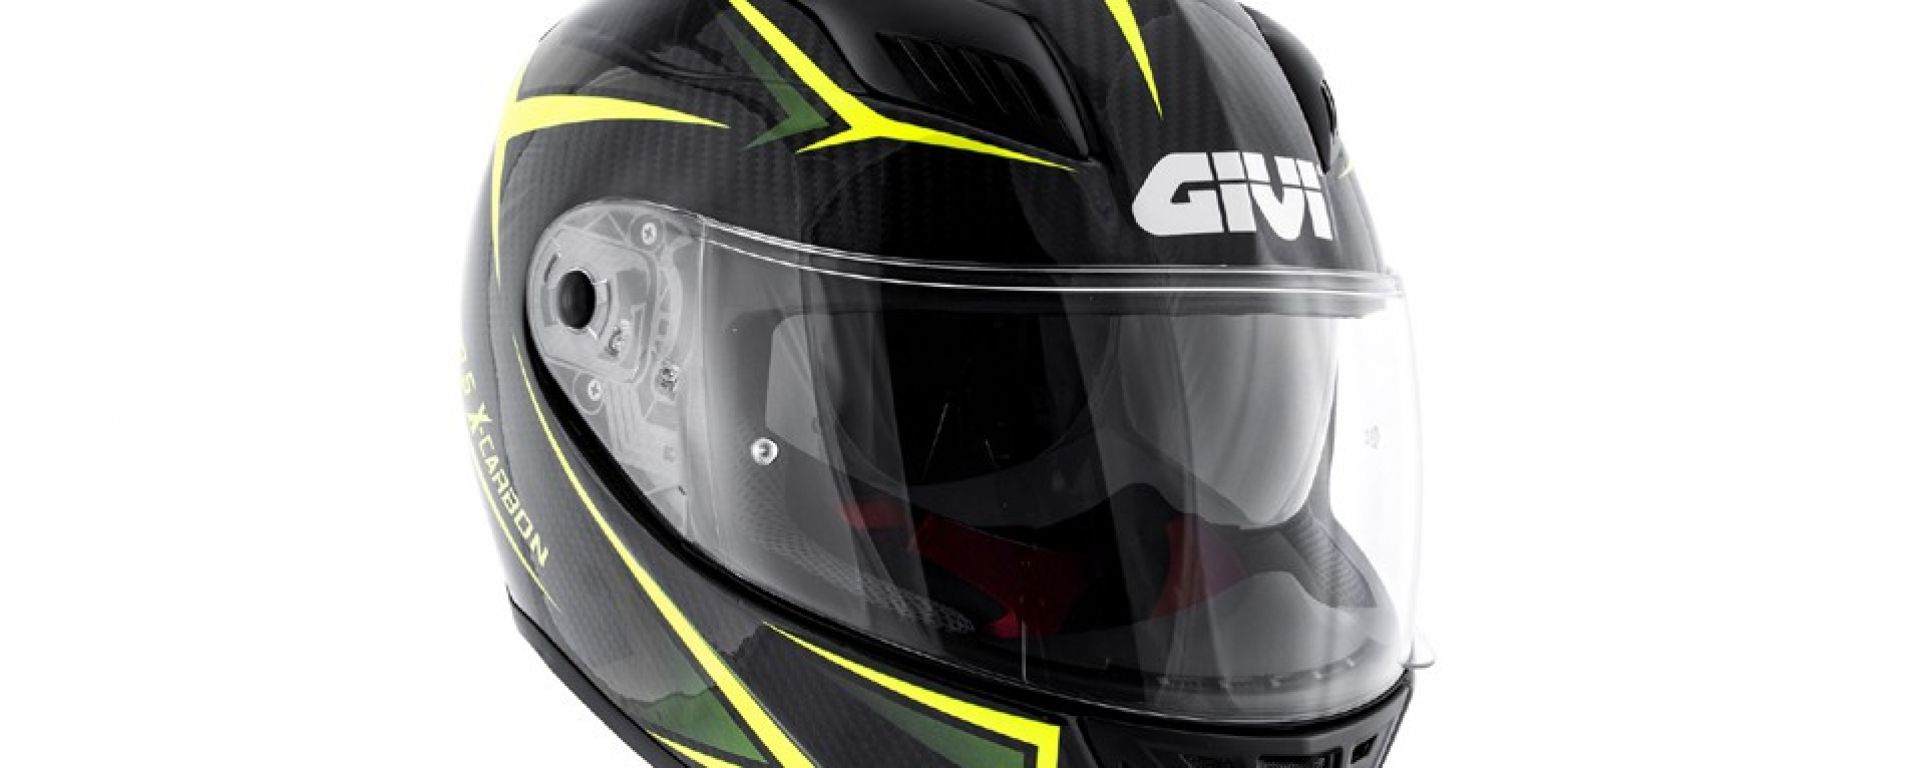 GIVI 40.5 X-CARBON Neon Yellow